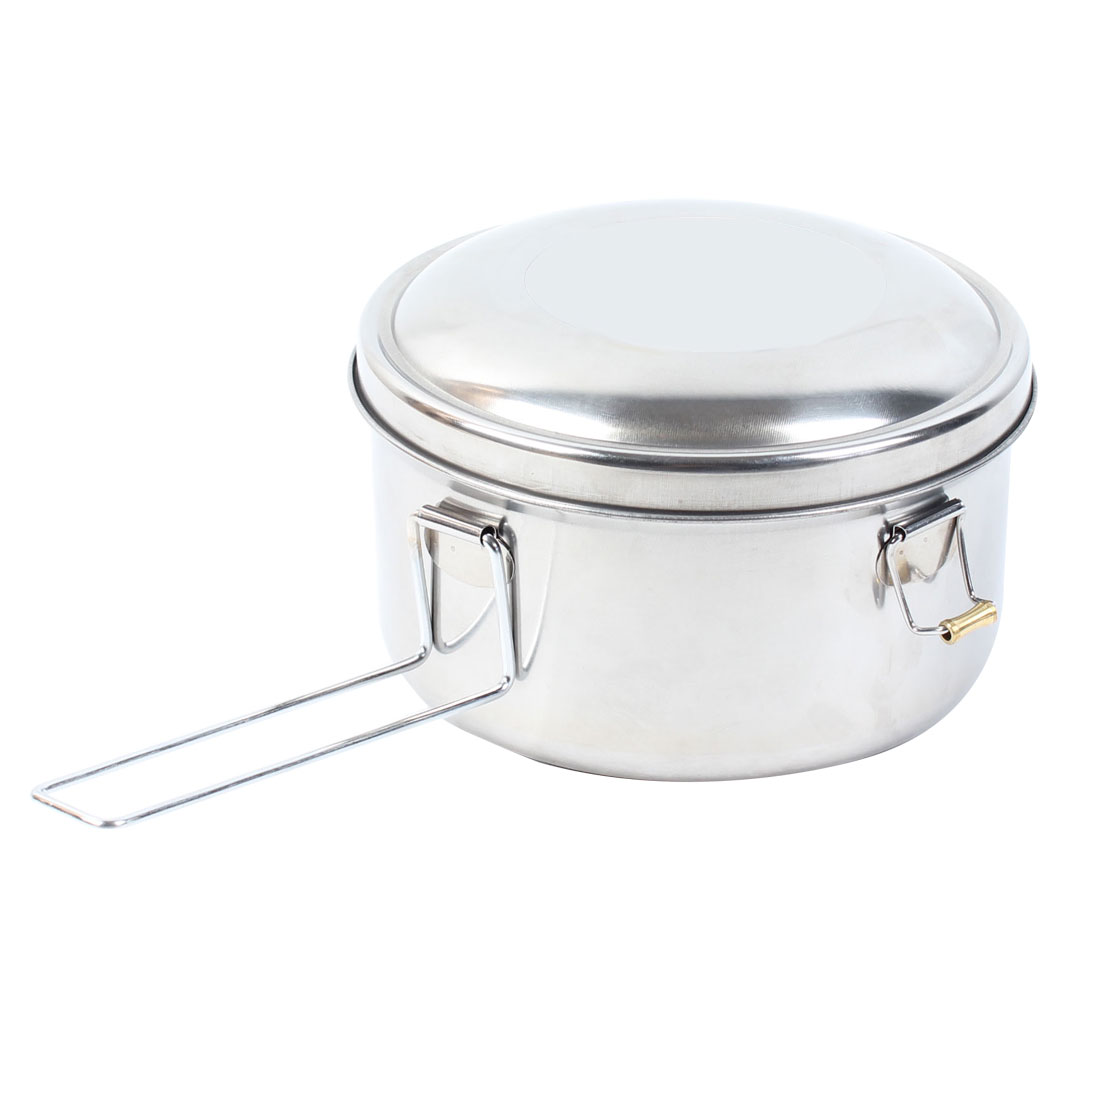 Kitchen Clasp Closures Stainless Steel 16cm Dia Lunch Box